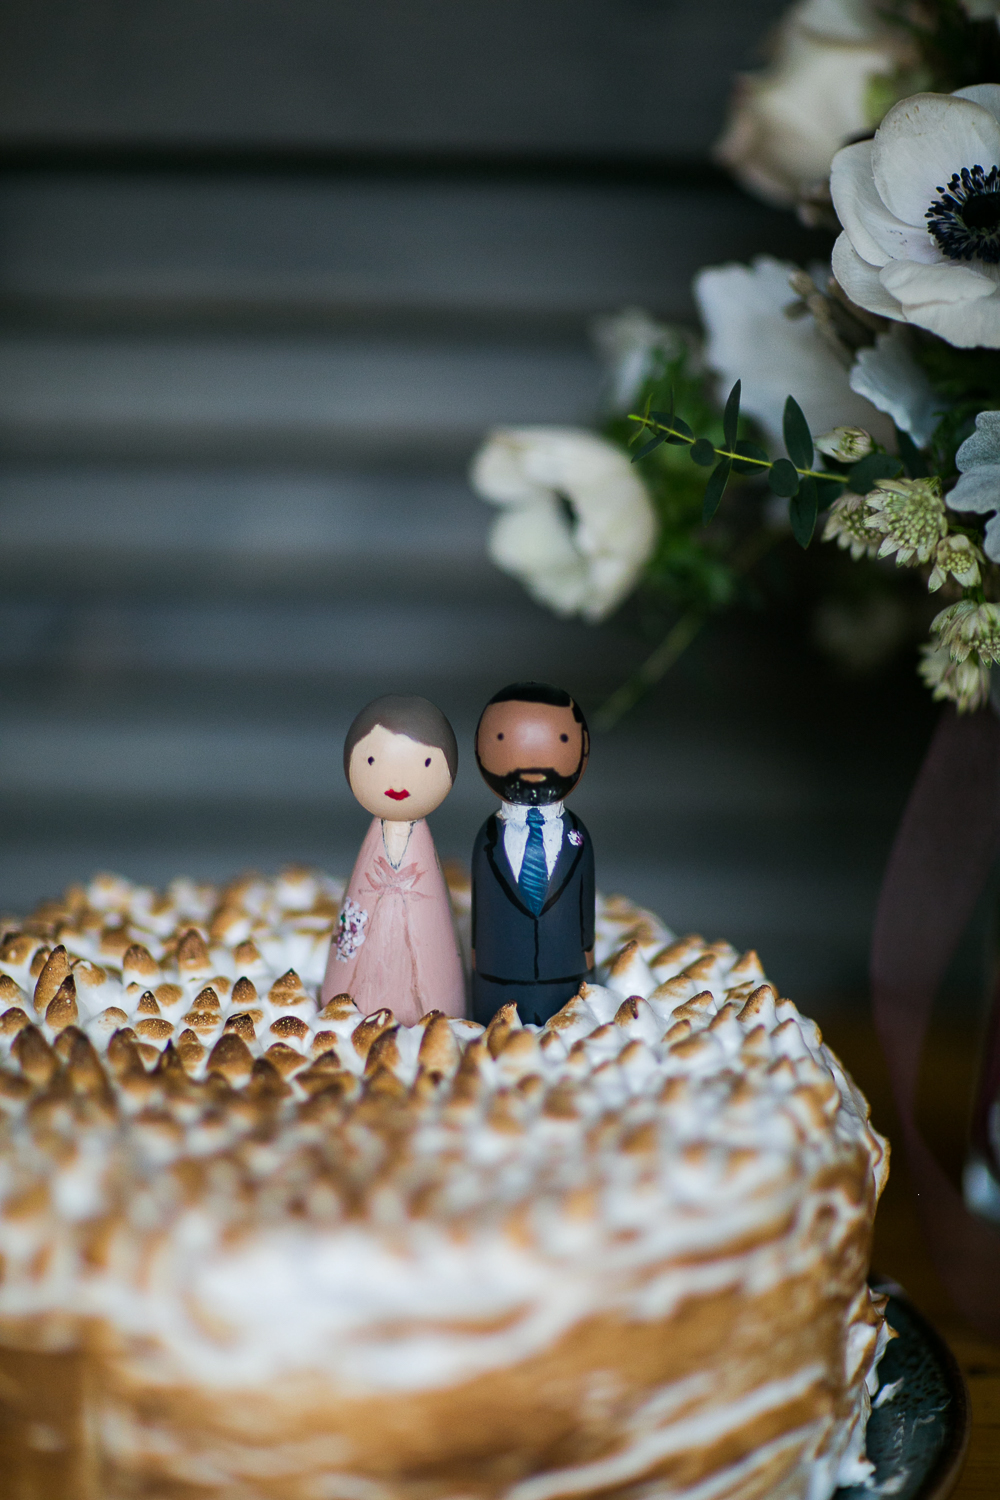 Single tier wedding cake with wooden cake toppers at an Upper West Side restaurant wedding venue. | Upper West Side Intimate Wedding | Kate & Sylvester's wedding in Manhattan.